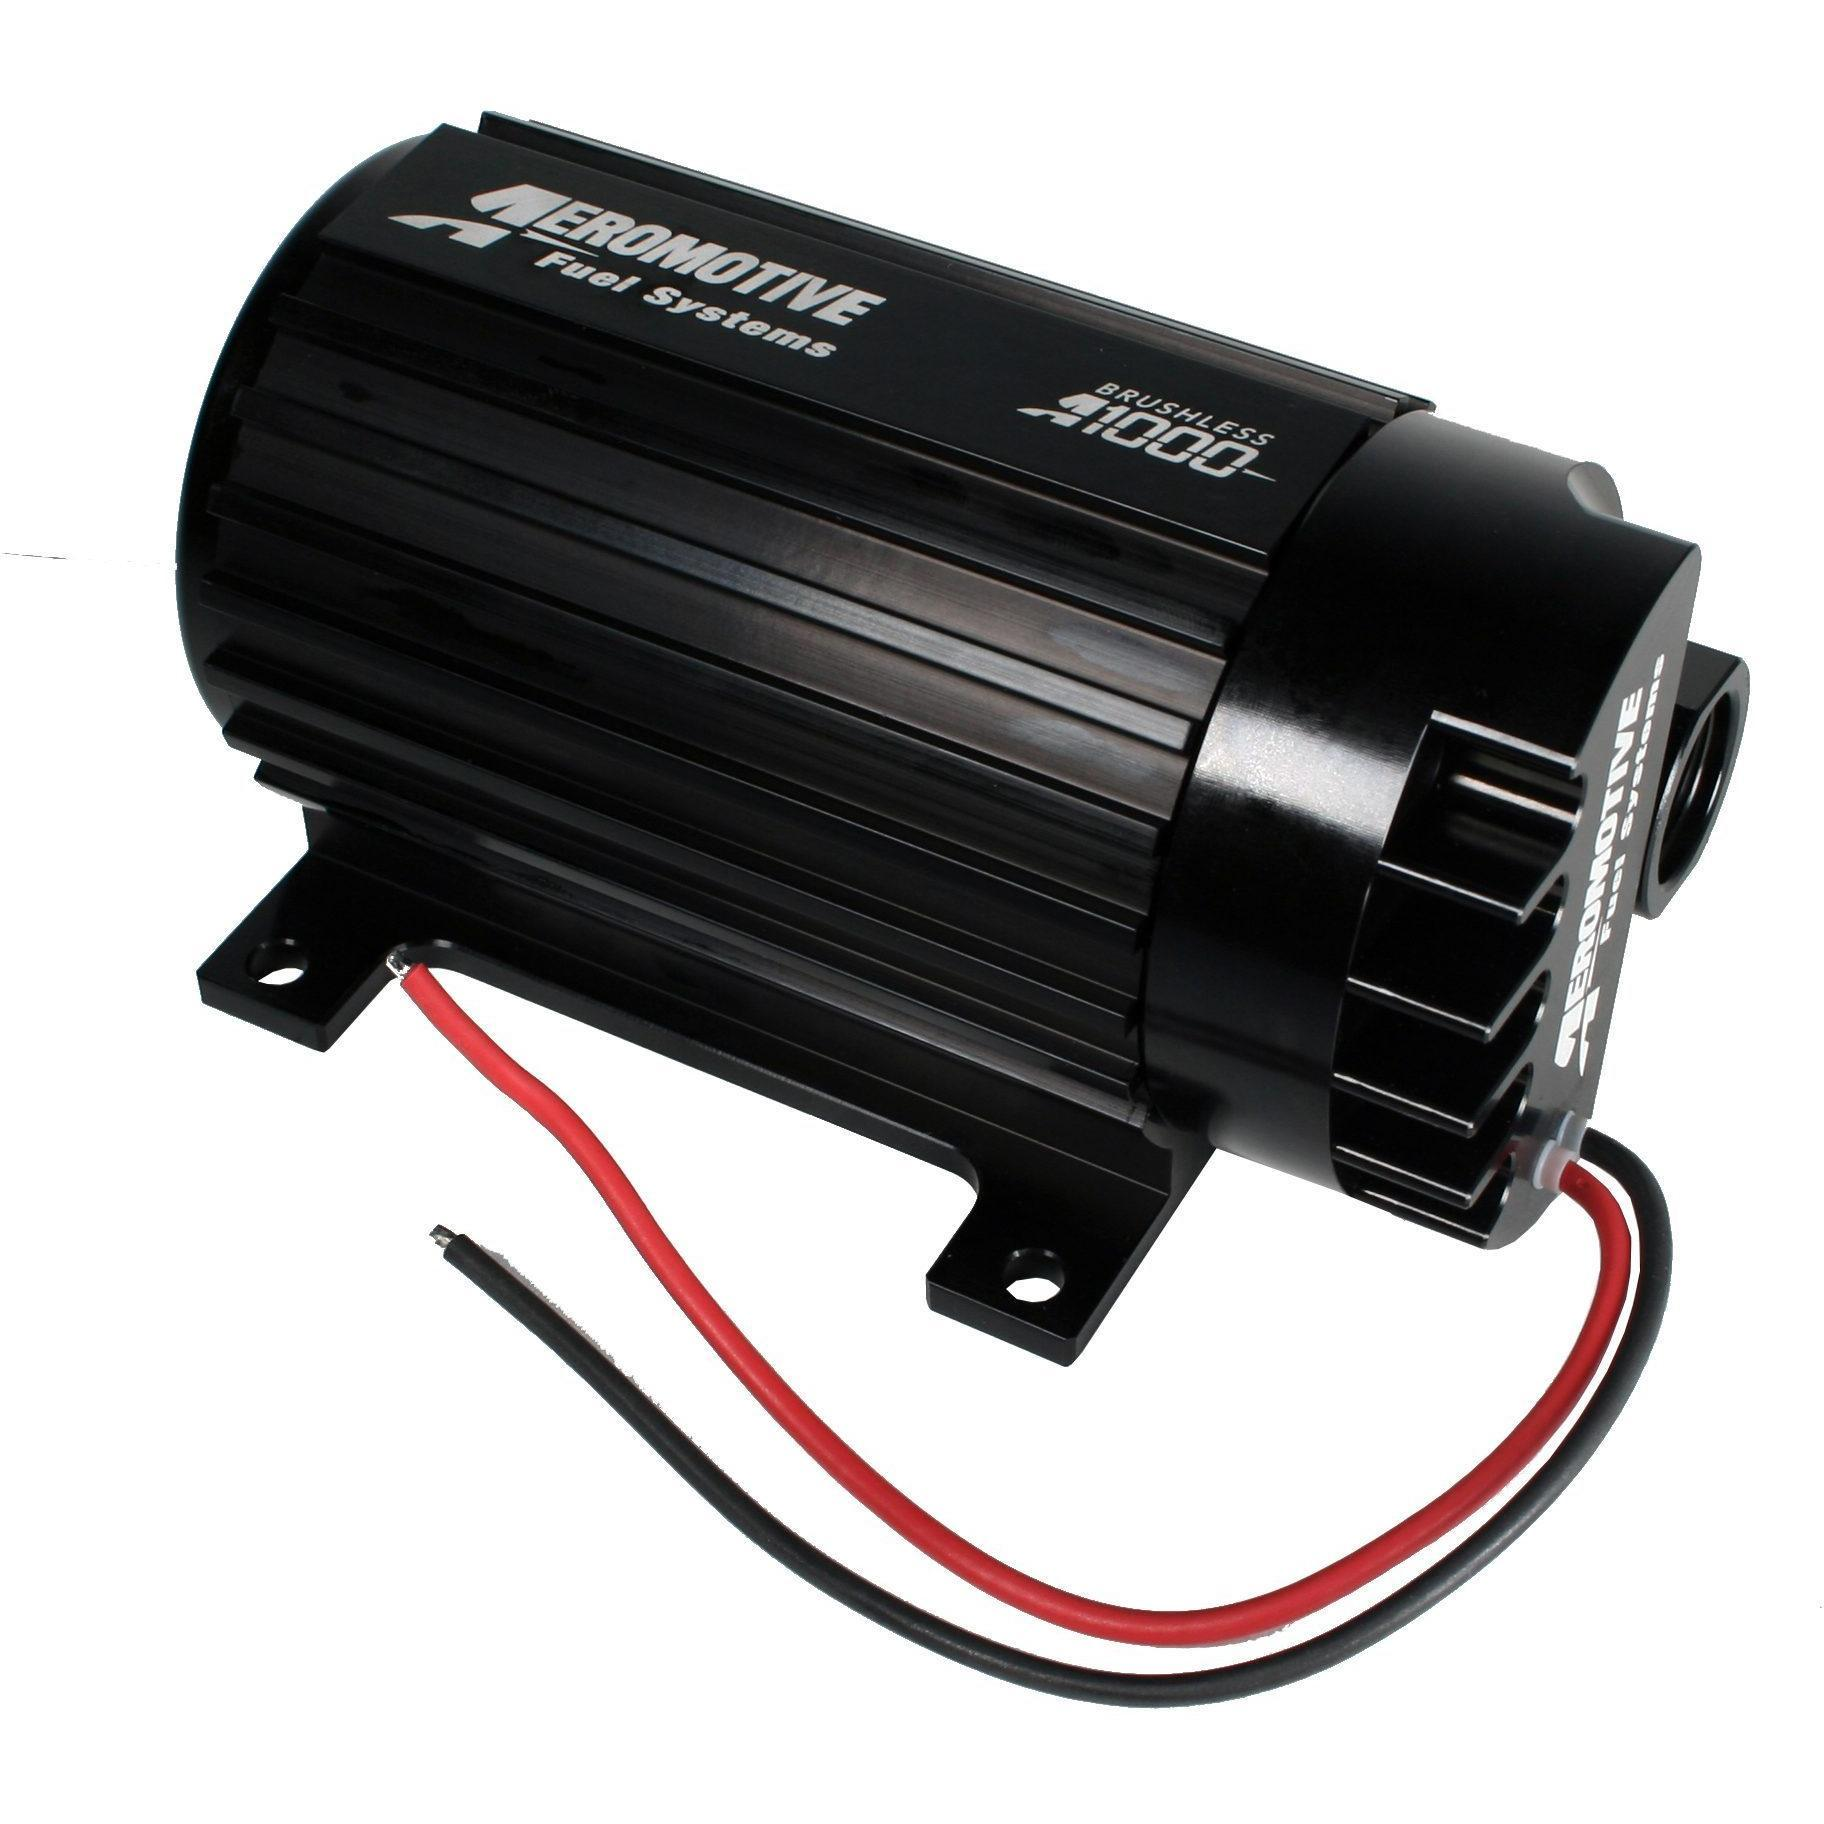 Aeromotive Brushless A1000 Signature Pump, w/Feet 11183-Aeromotive-Motion Raceworks